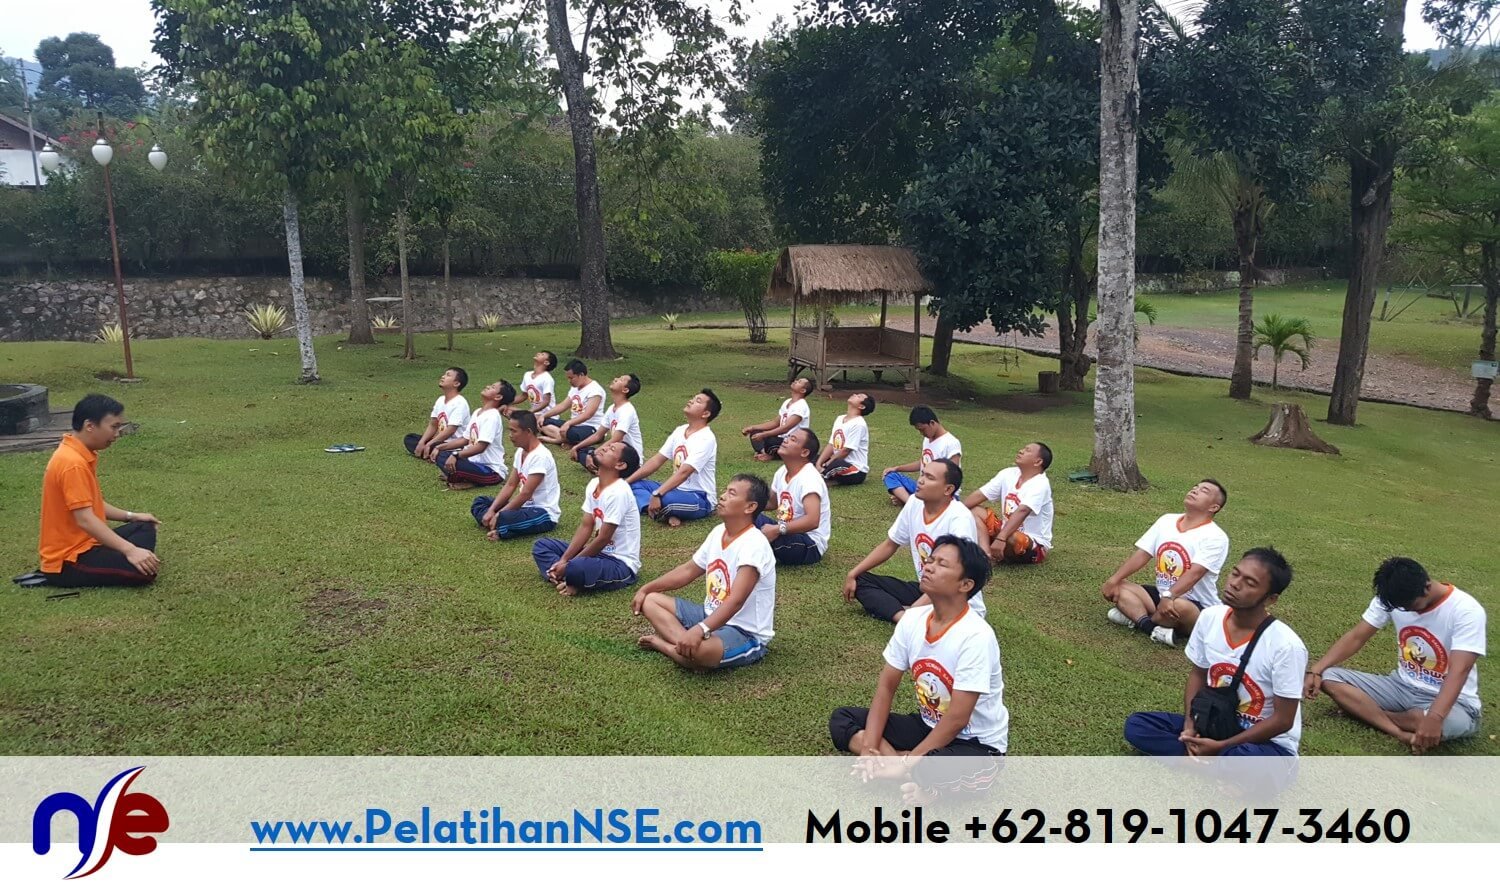 NSE Basic Self Empowerment KAI 29-30 September 2016 - Olahraga Pagi